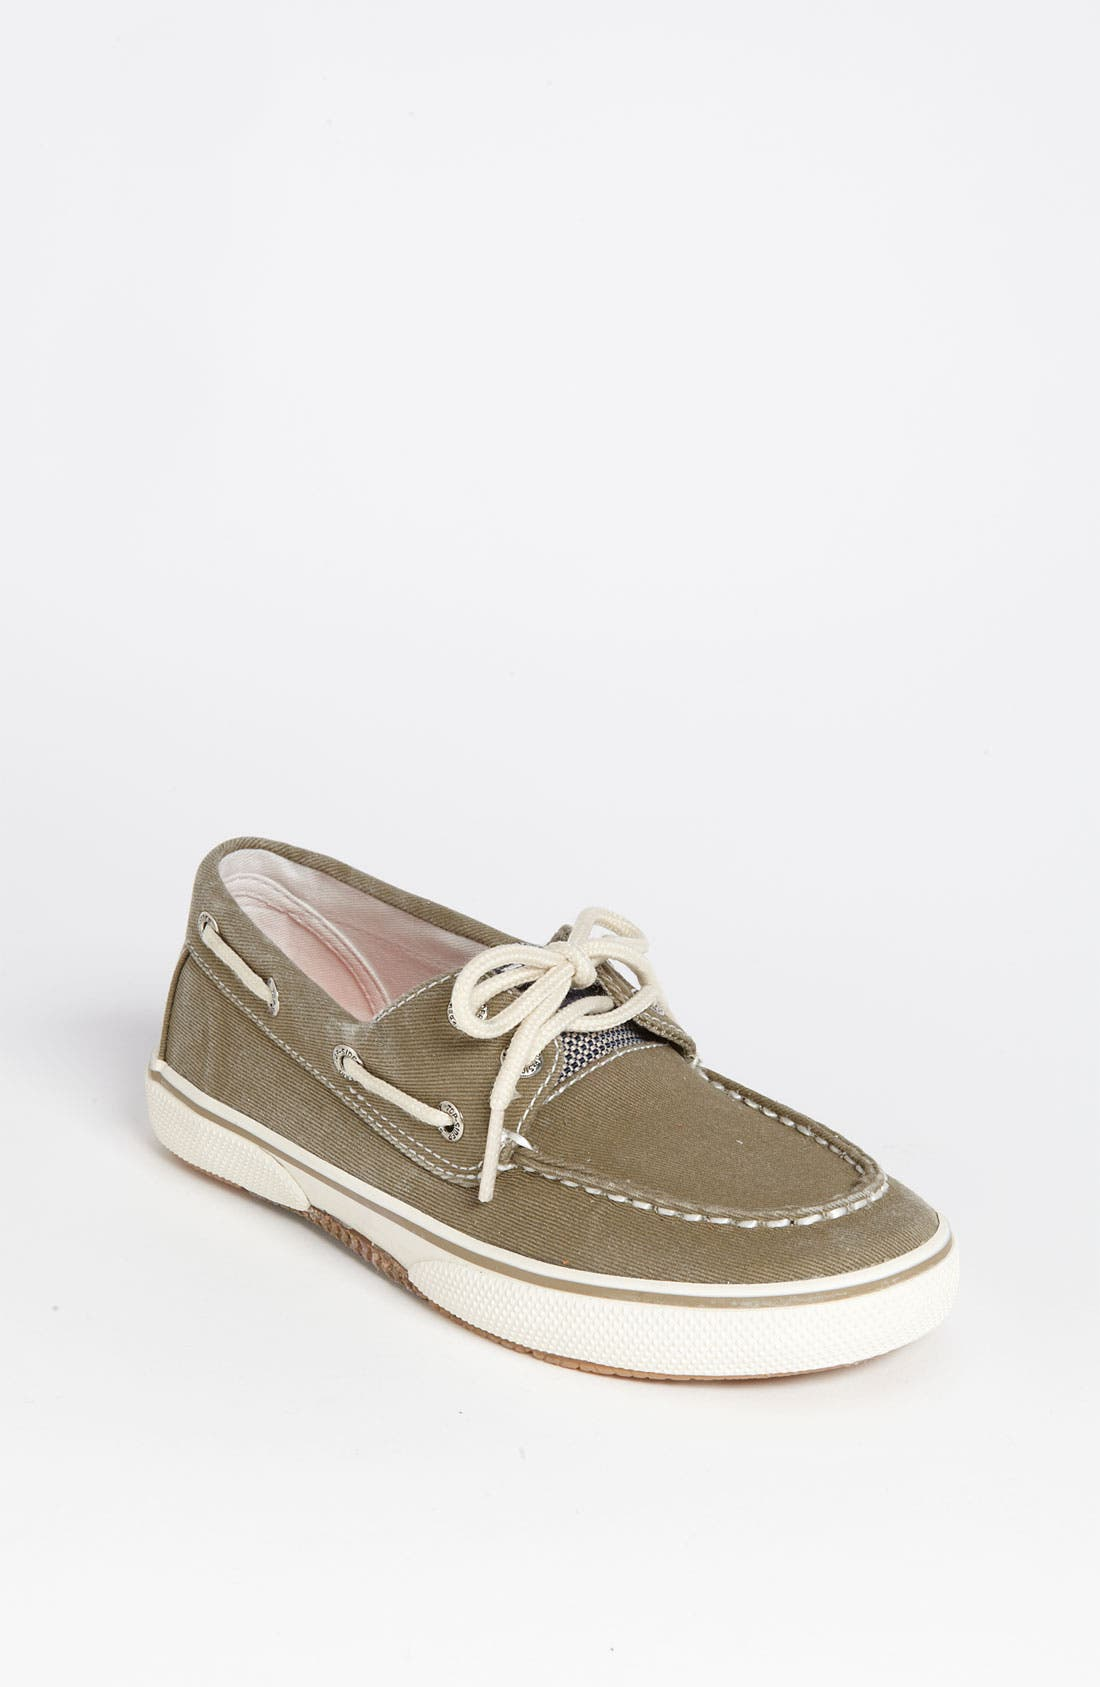 Main Image - Sperry Top-Sider® 'Halyard' Boat Shoe (Walker, Toddler, Little Kid & Big Kid)